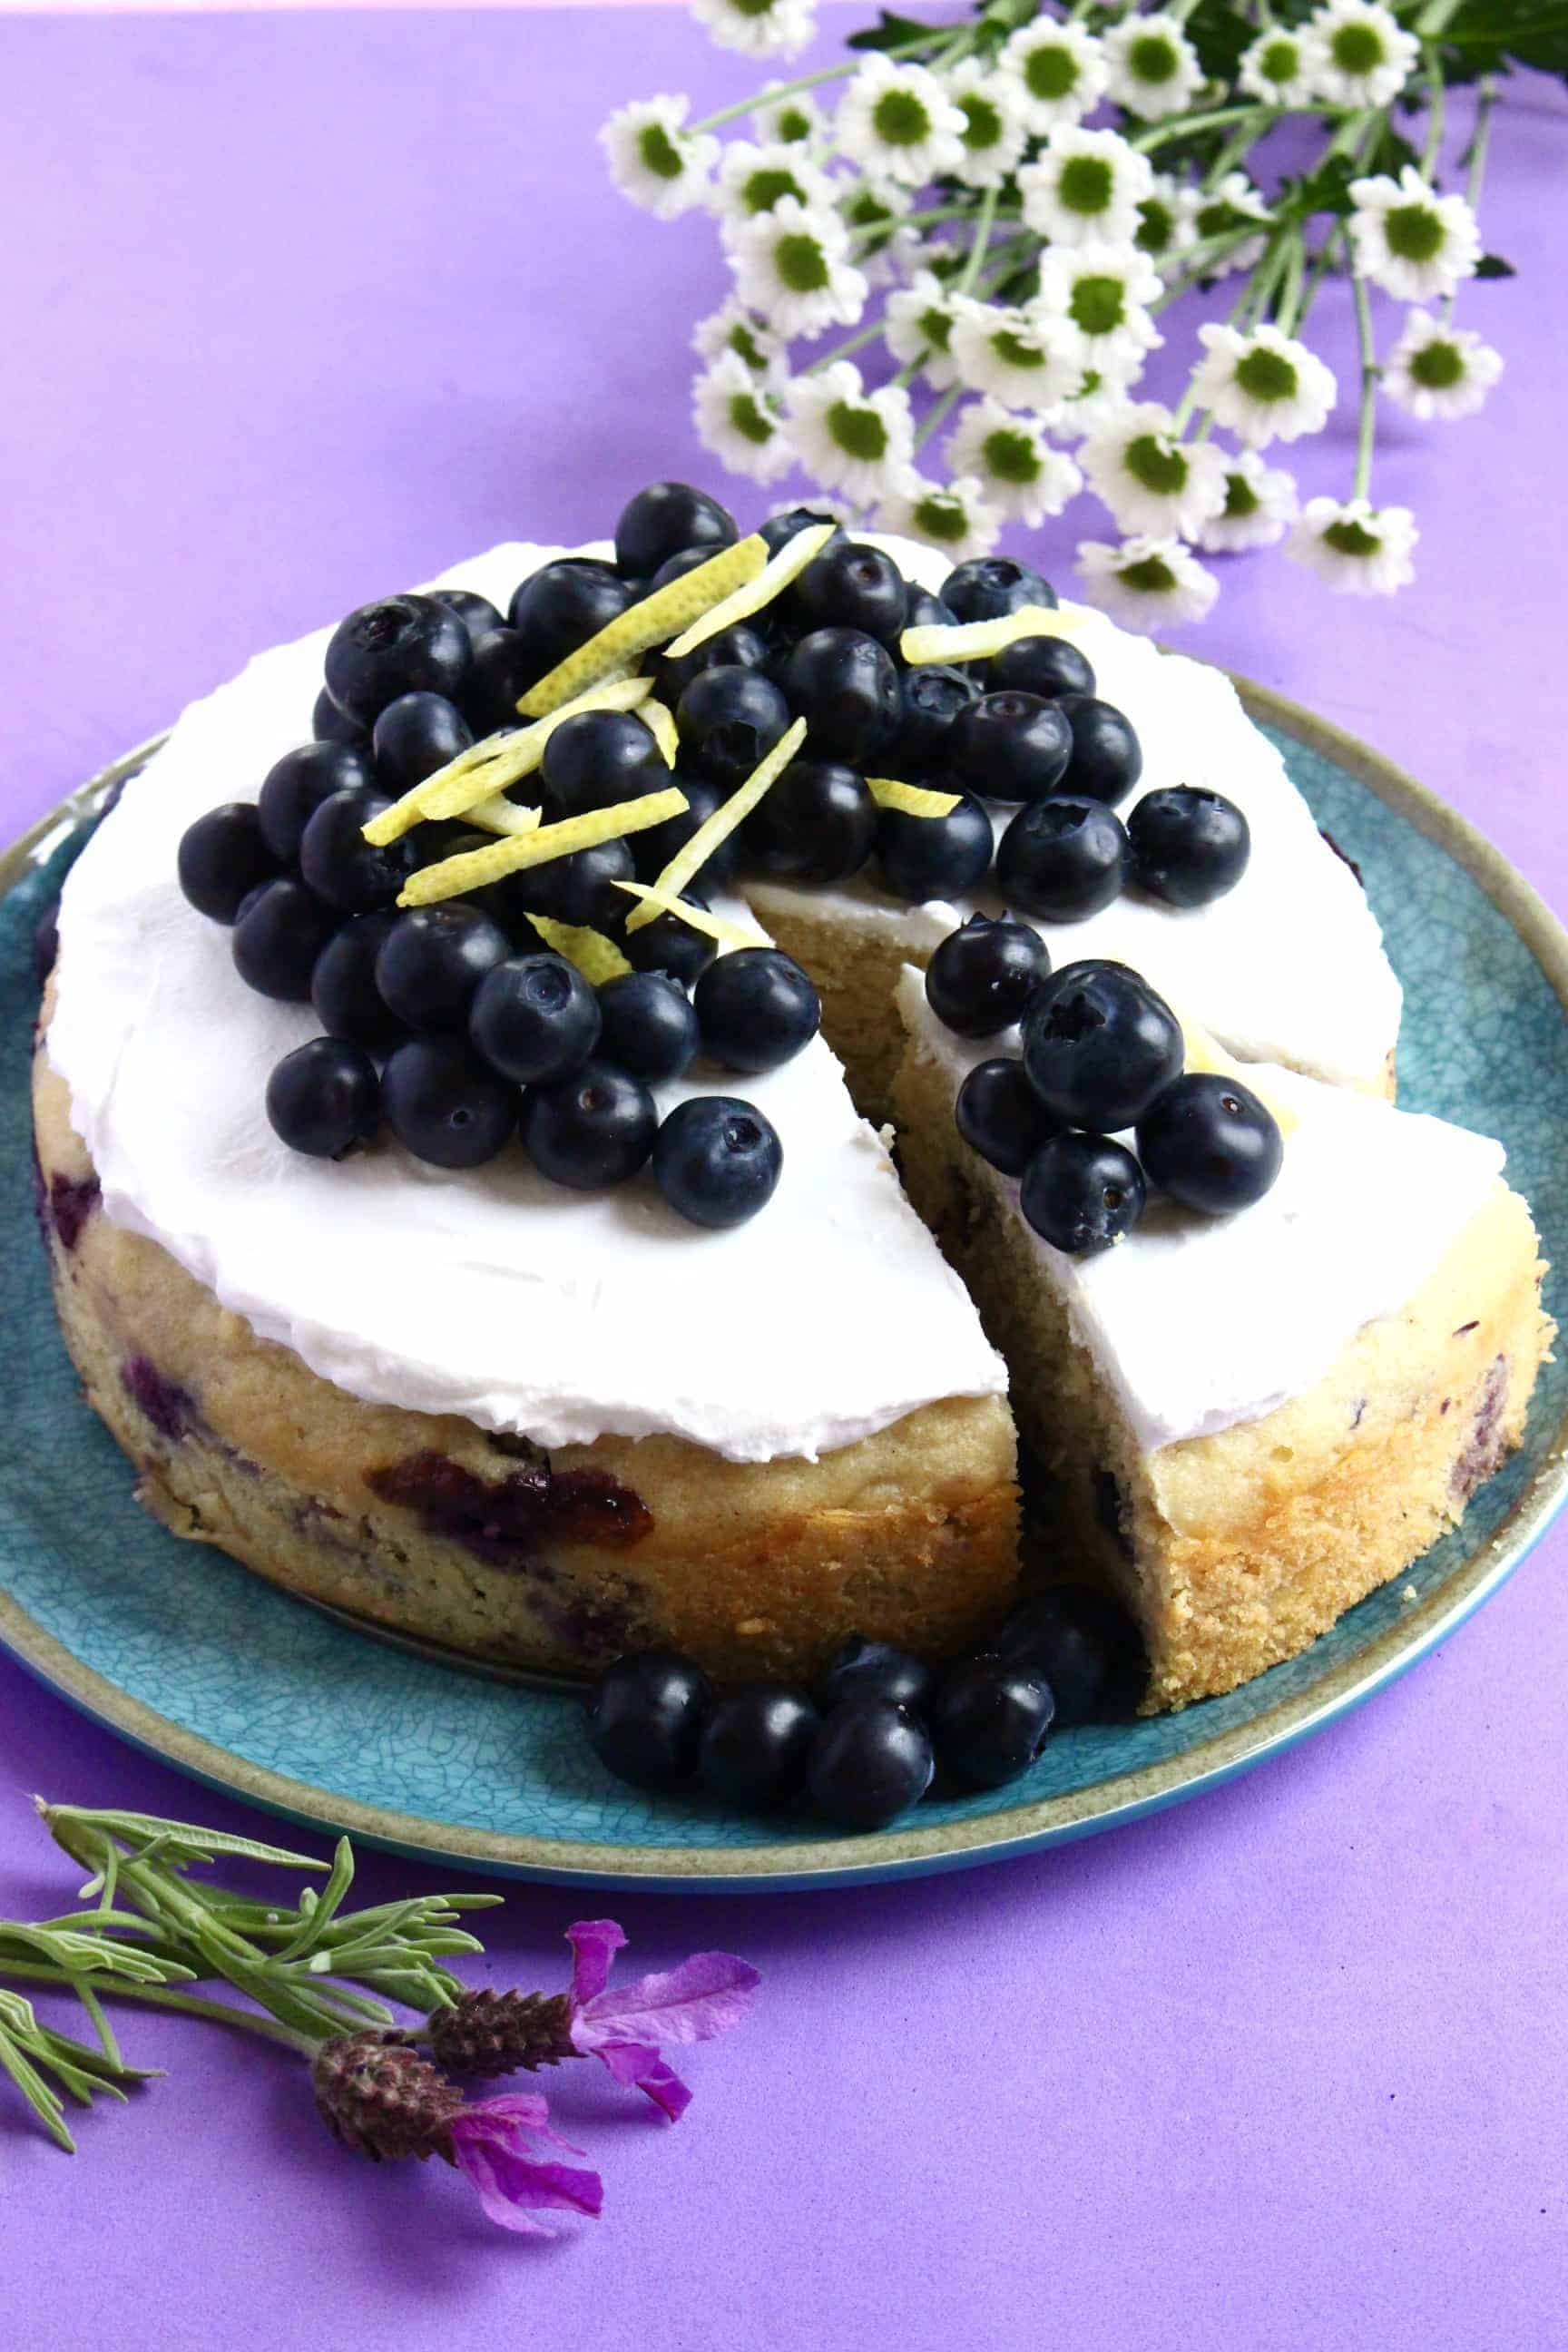 Gluten-free vegan lemon blueberry cake topped with blueberries on a blue plate